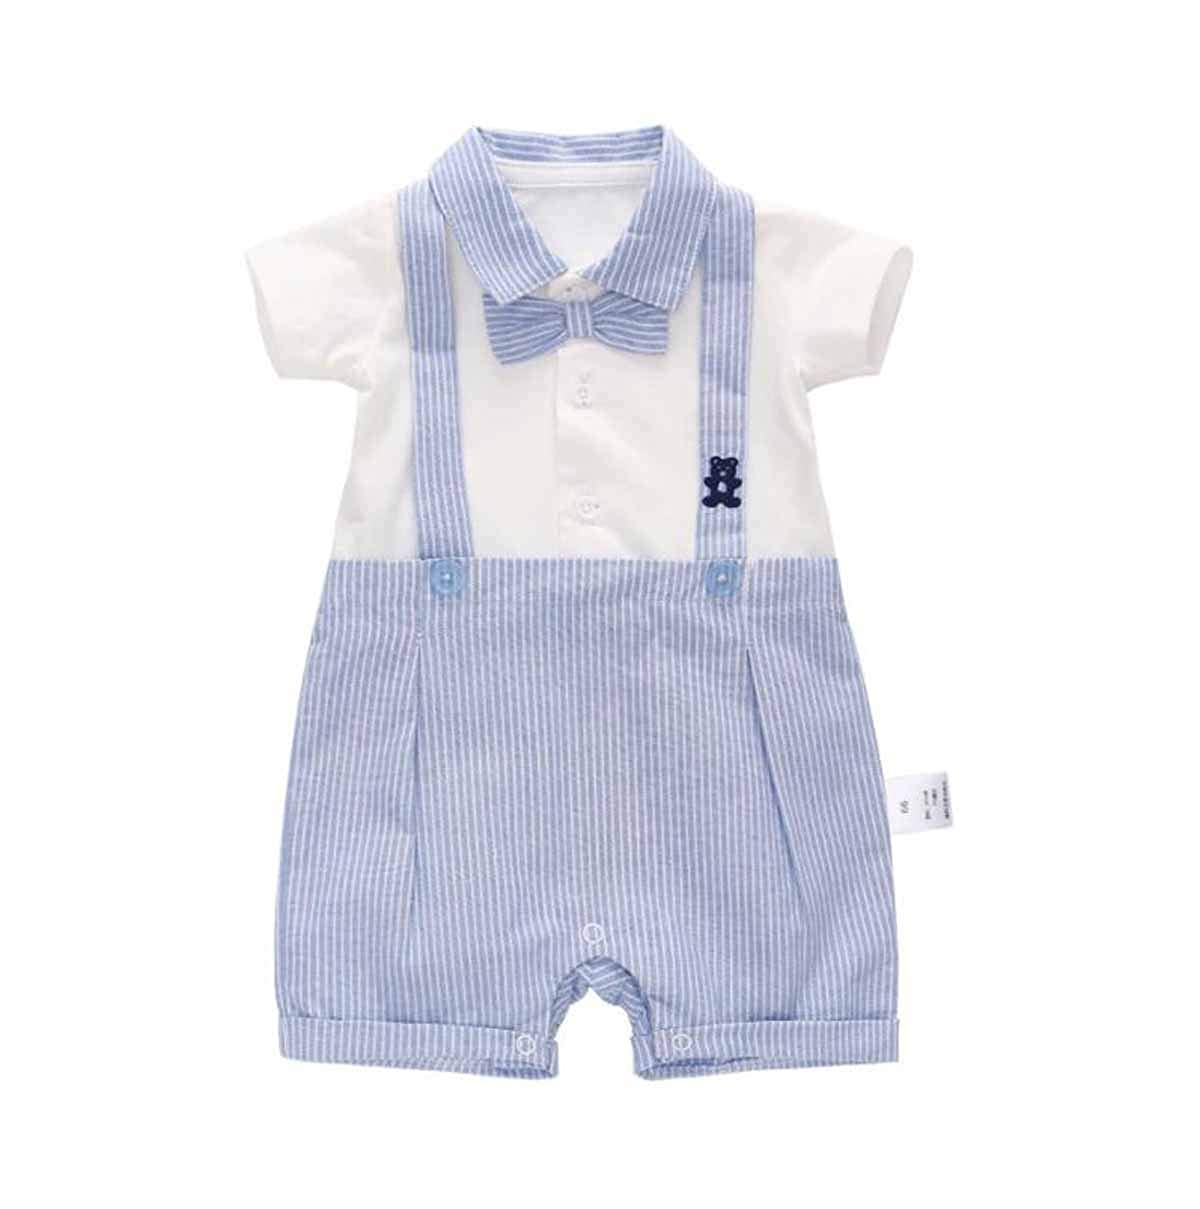 ACVIP Baby Boys Striped Short Sleeves Shirt Rompers Gentlemen Suit